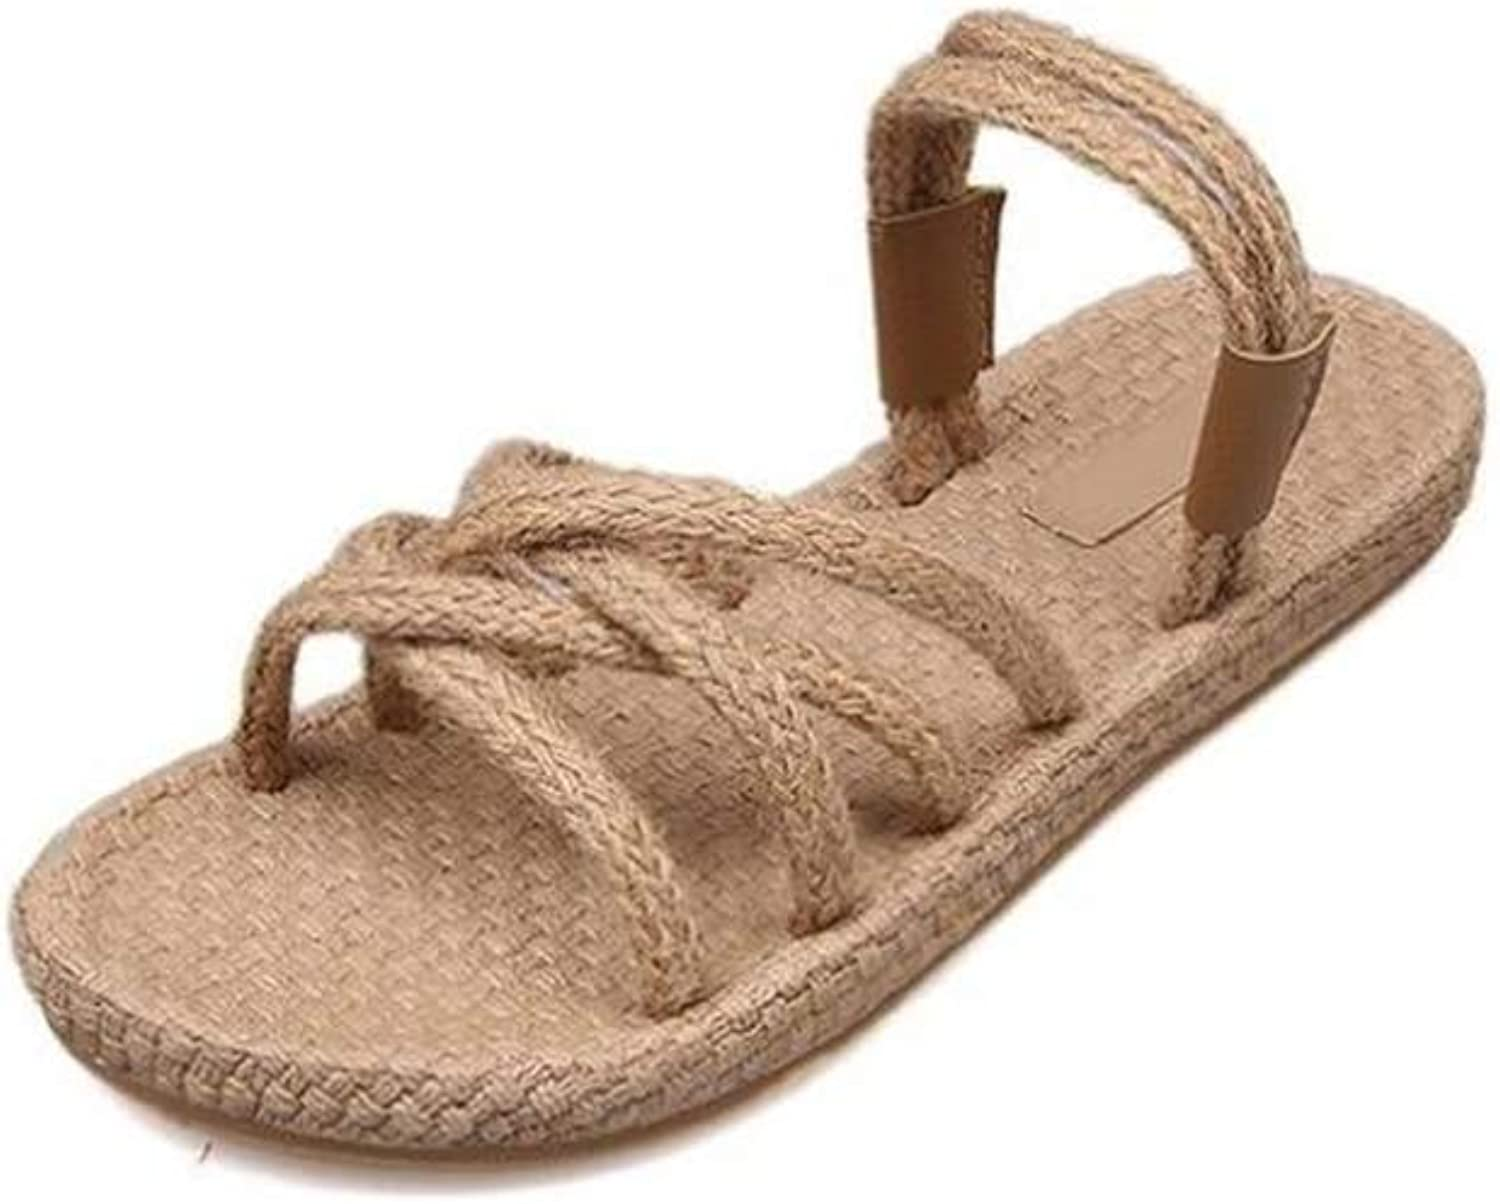 HULUN Hand-Made Hemp Rope with Straps Knitted Flat Sole and Two Women's Sandals